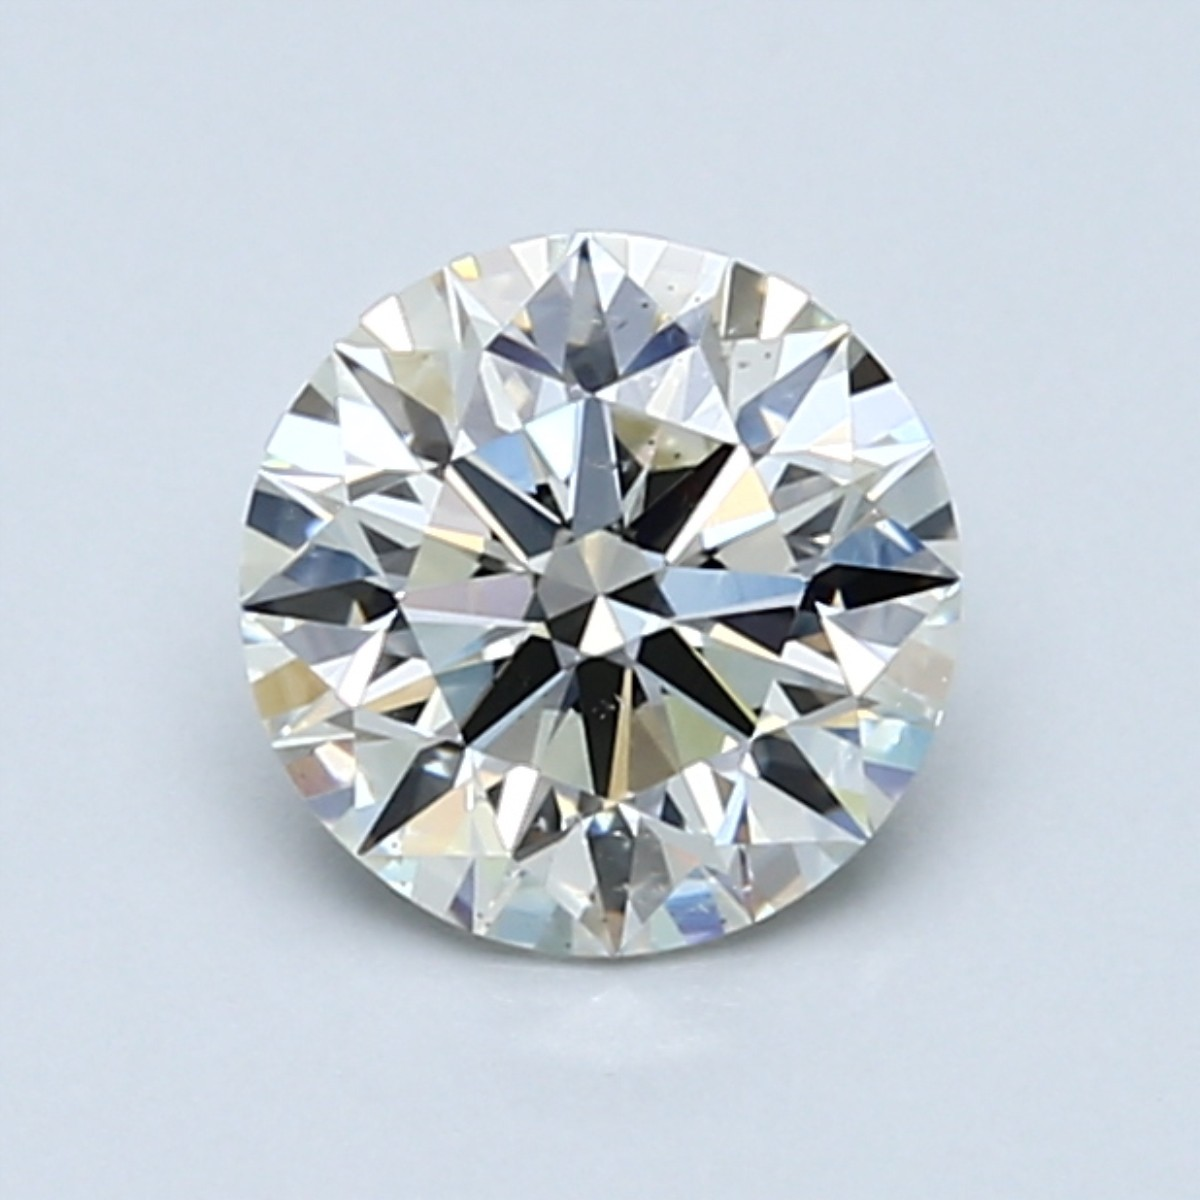 How to Determine the Clarity and Color of Diamonds